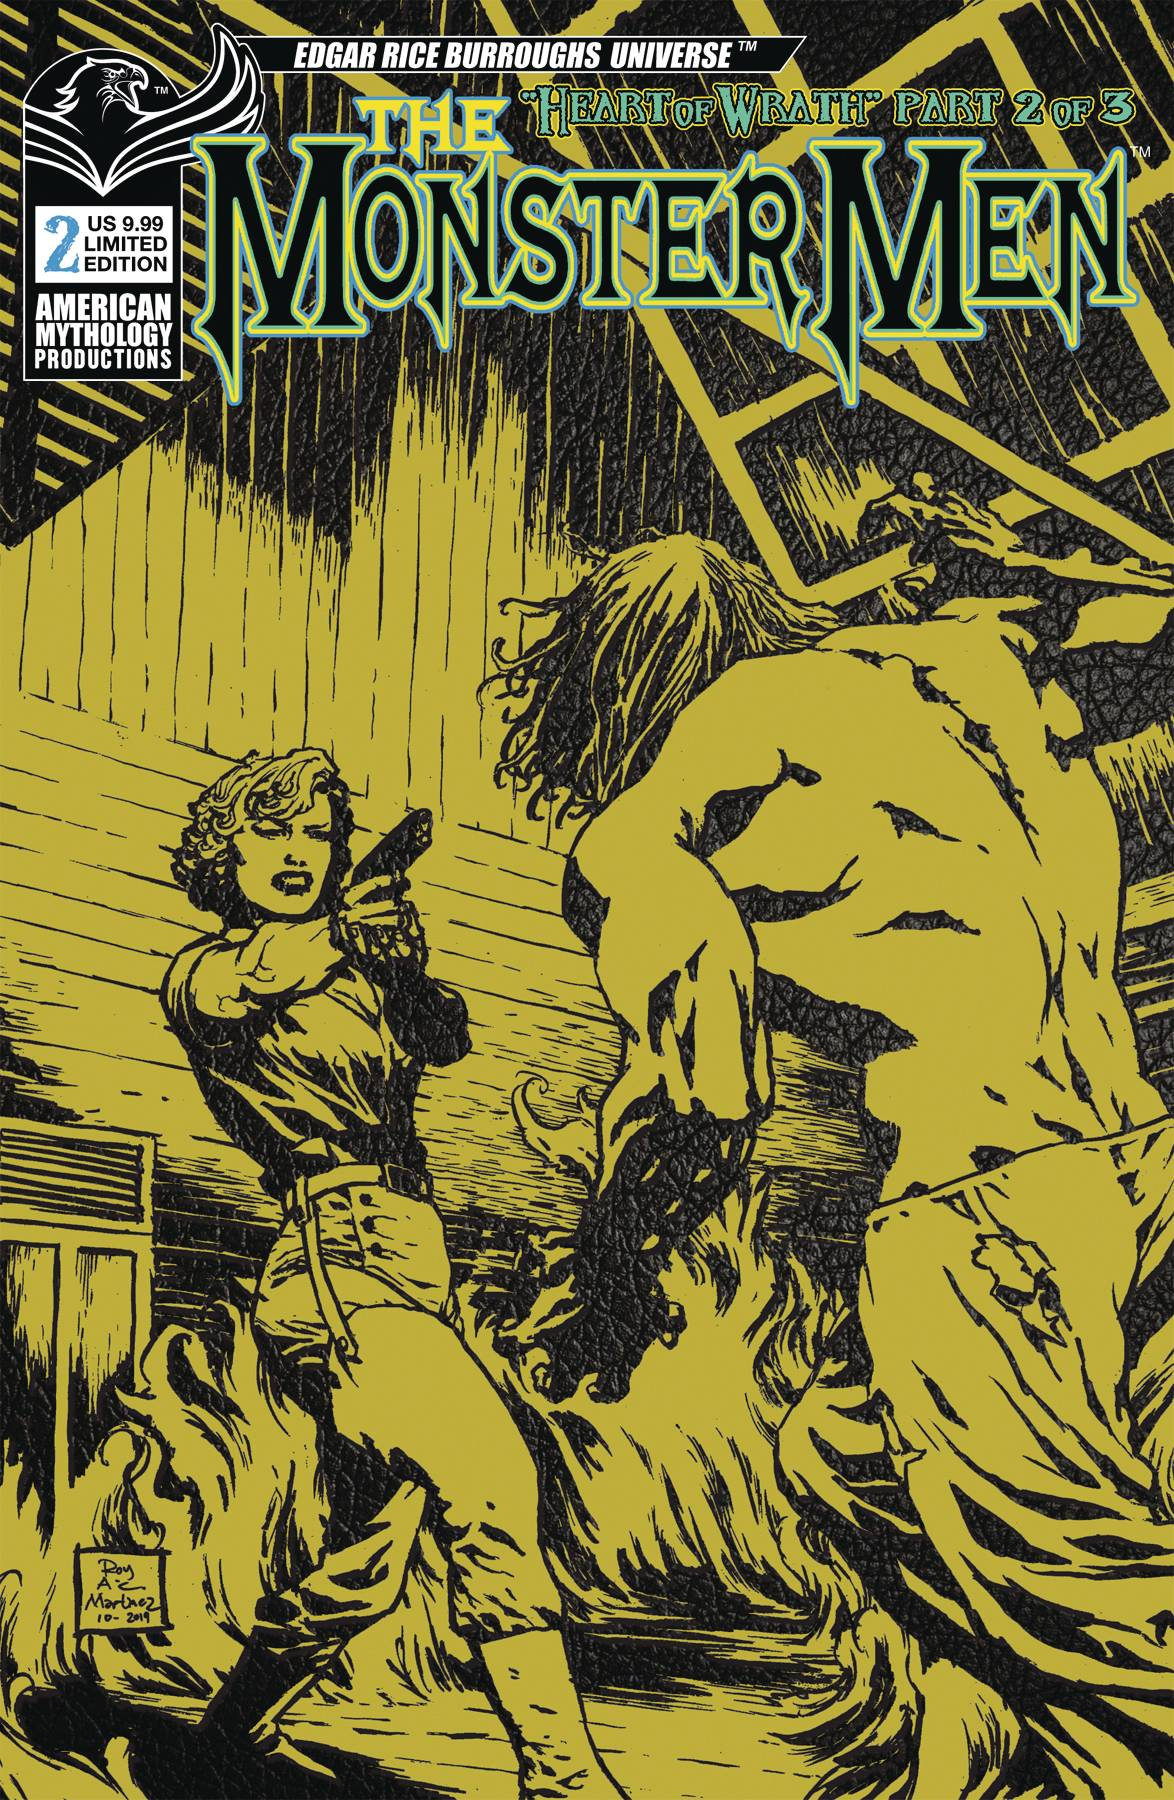 MONSTER MEN #2 PULP LTD ED VAR (MR)